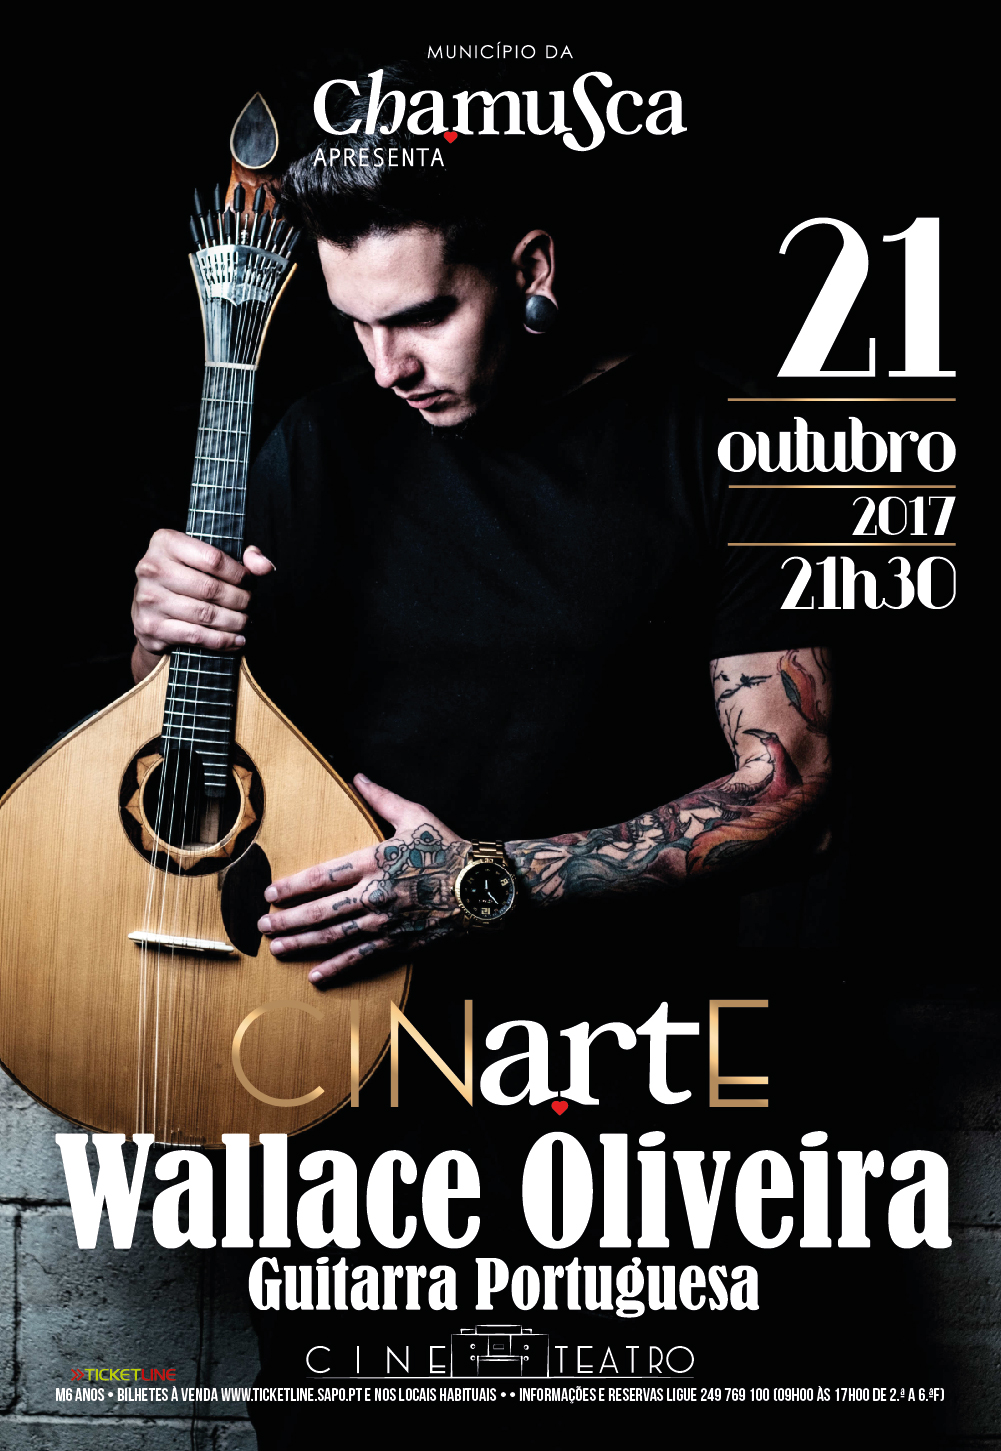 CMC - Wallace Oliveira_ticket